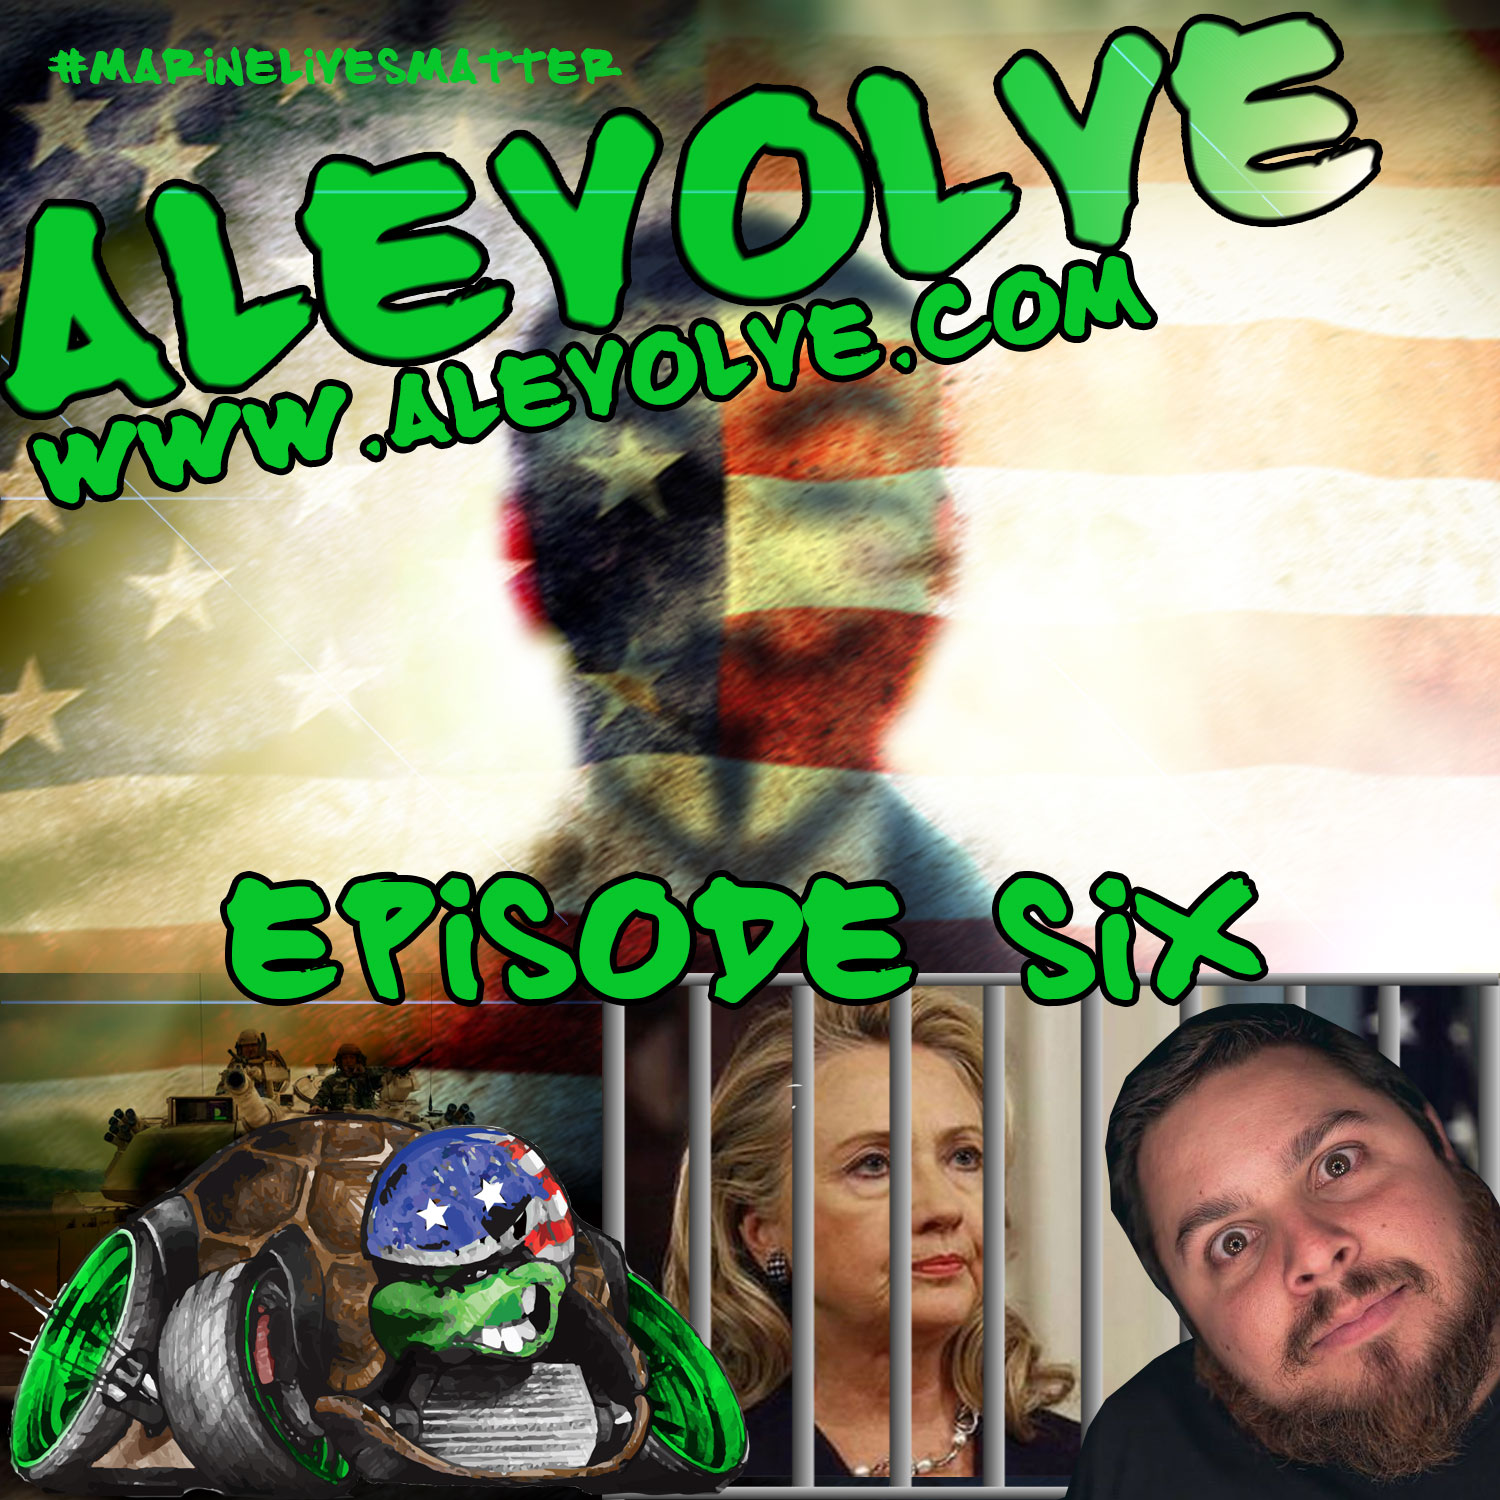 ALEVOLVE RADIO! Episode 6 - #Marinelivesmatter, MEMETASTIC, Anonymous, Hillary4Prison, Hate today